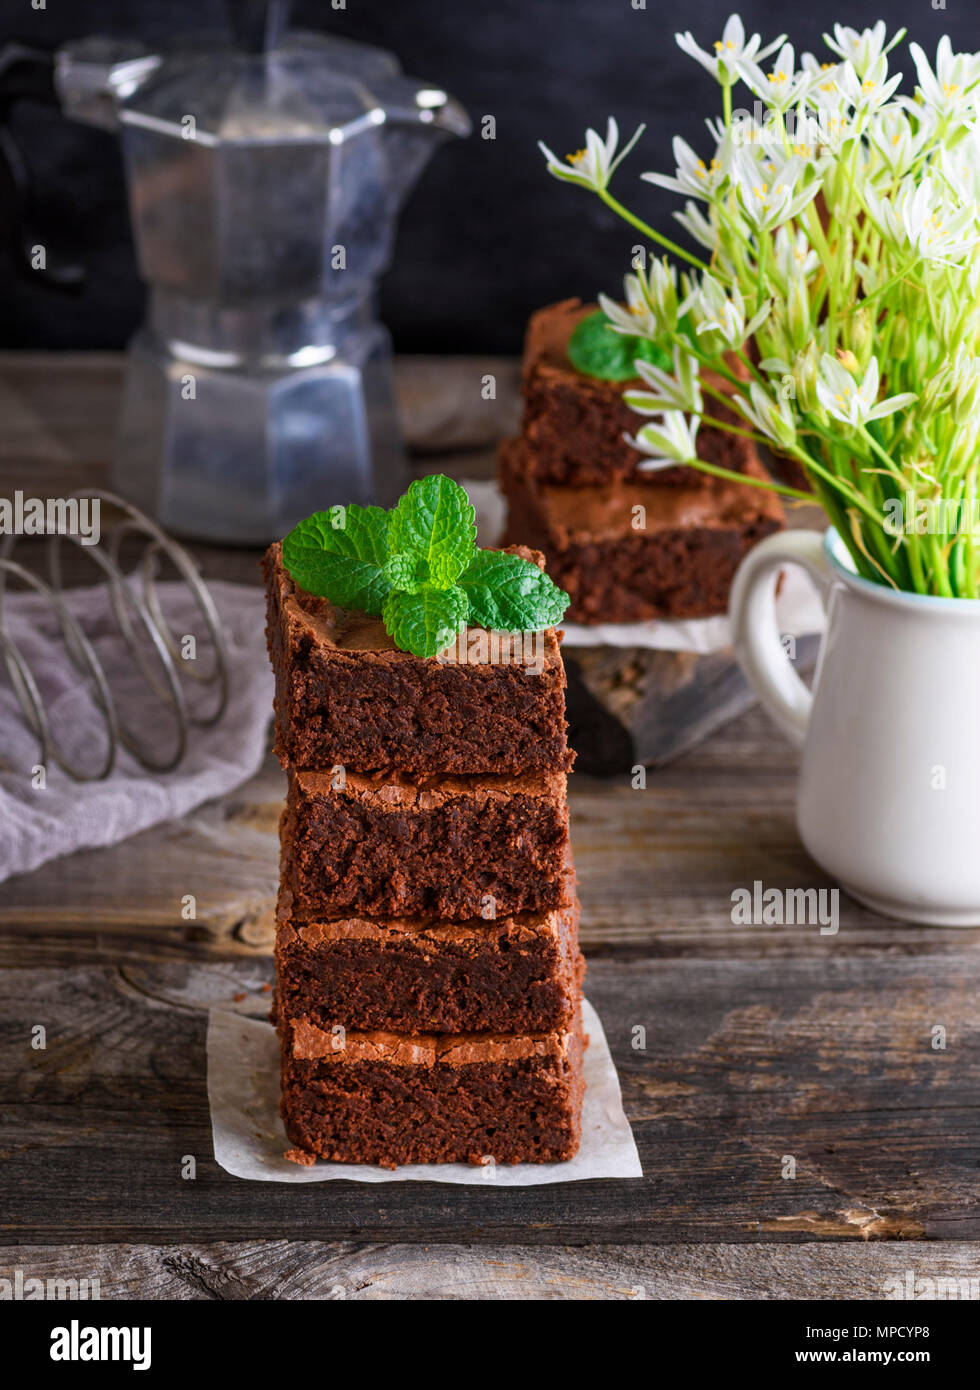 a pile of square pieces of baked brownie on a gray wooden table,  close up - Stock Image